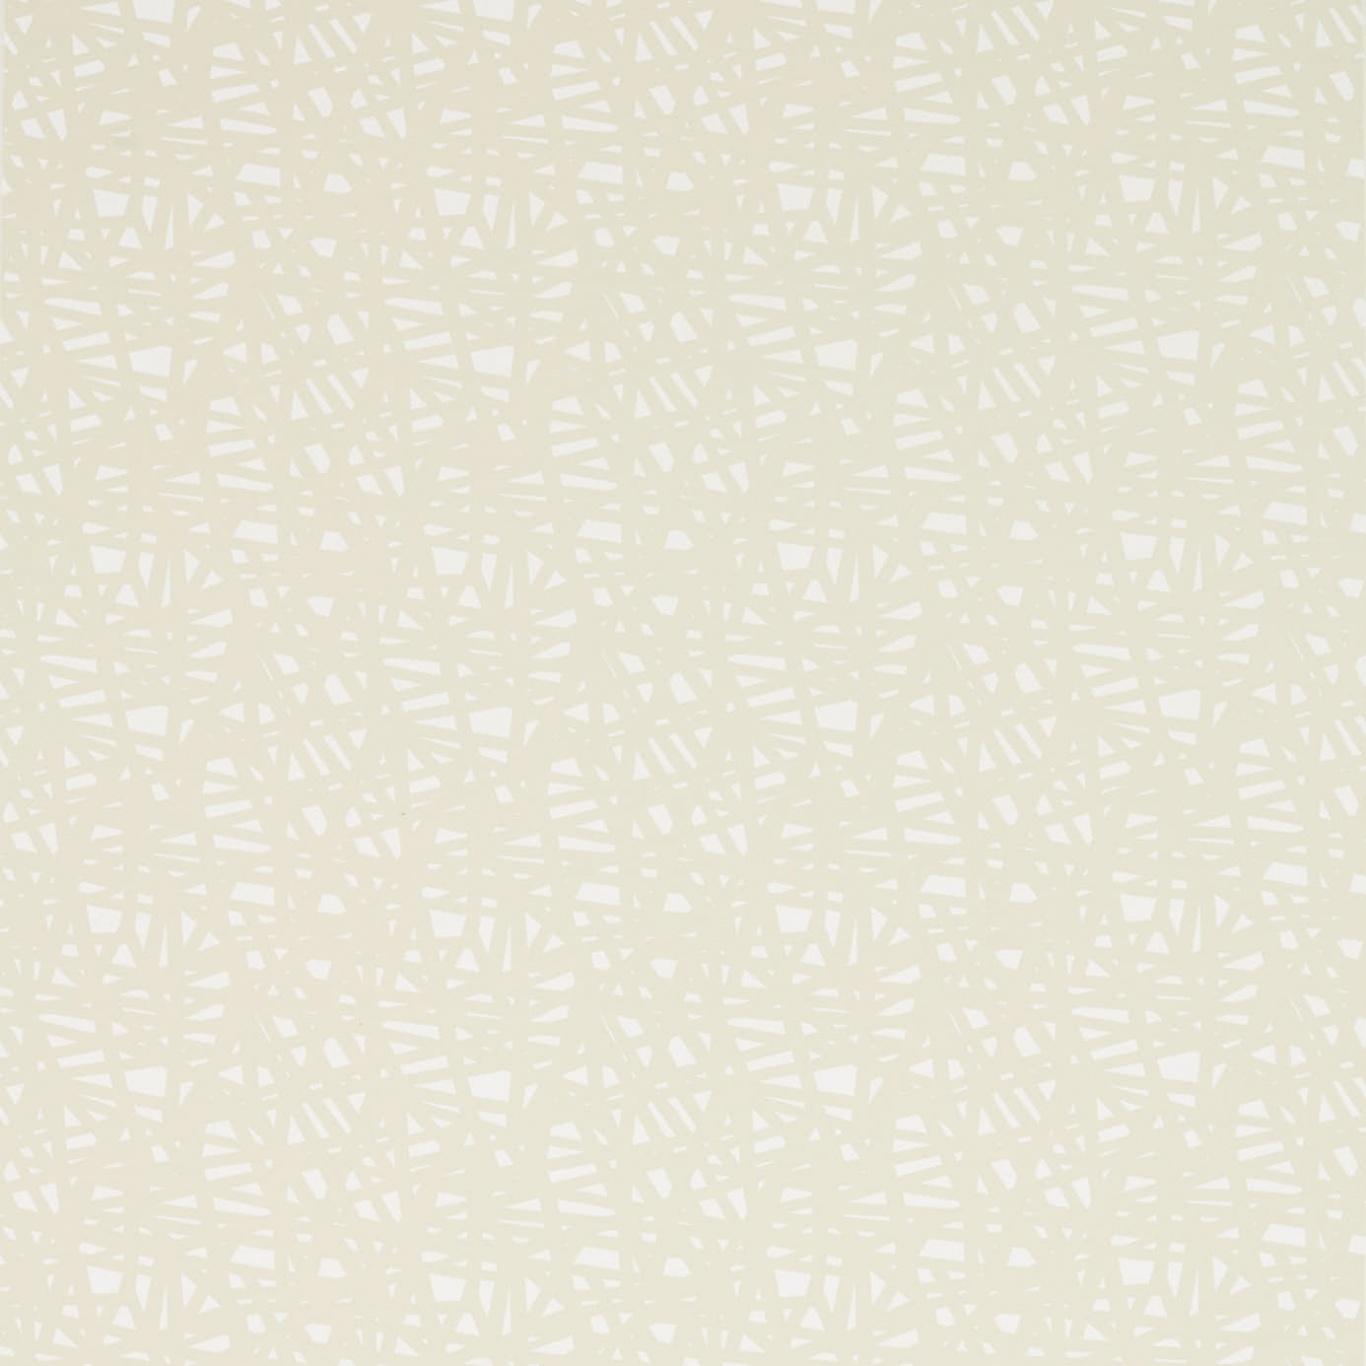 Image of Scion Saxony Pebble Curtain Fabric 132635